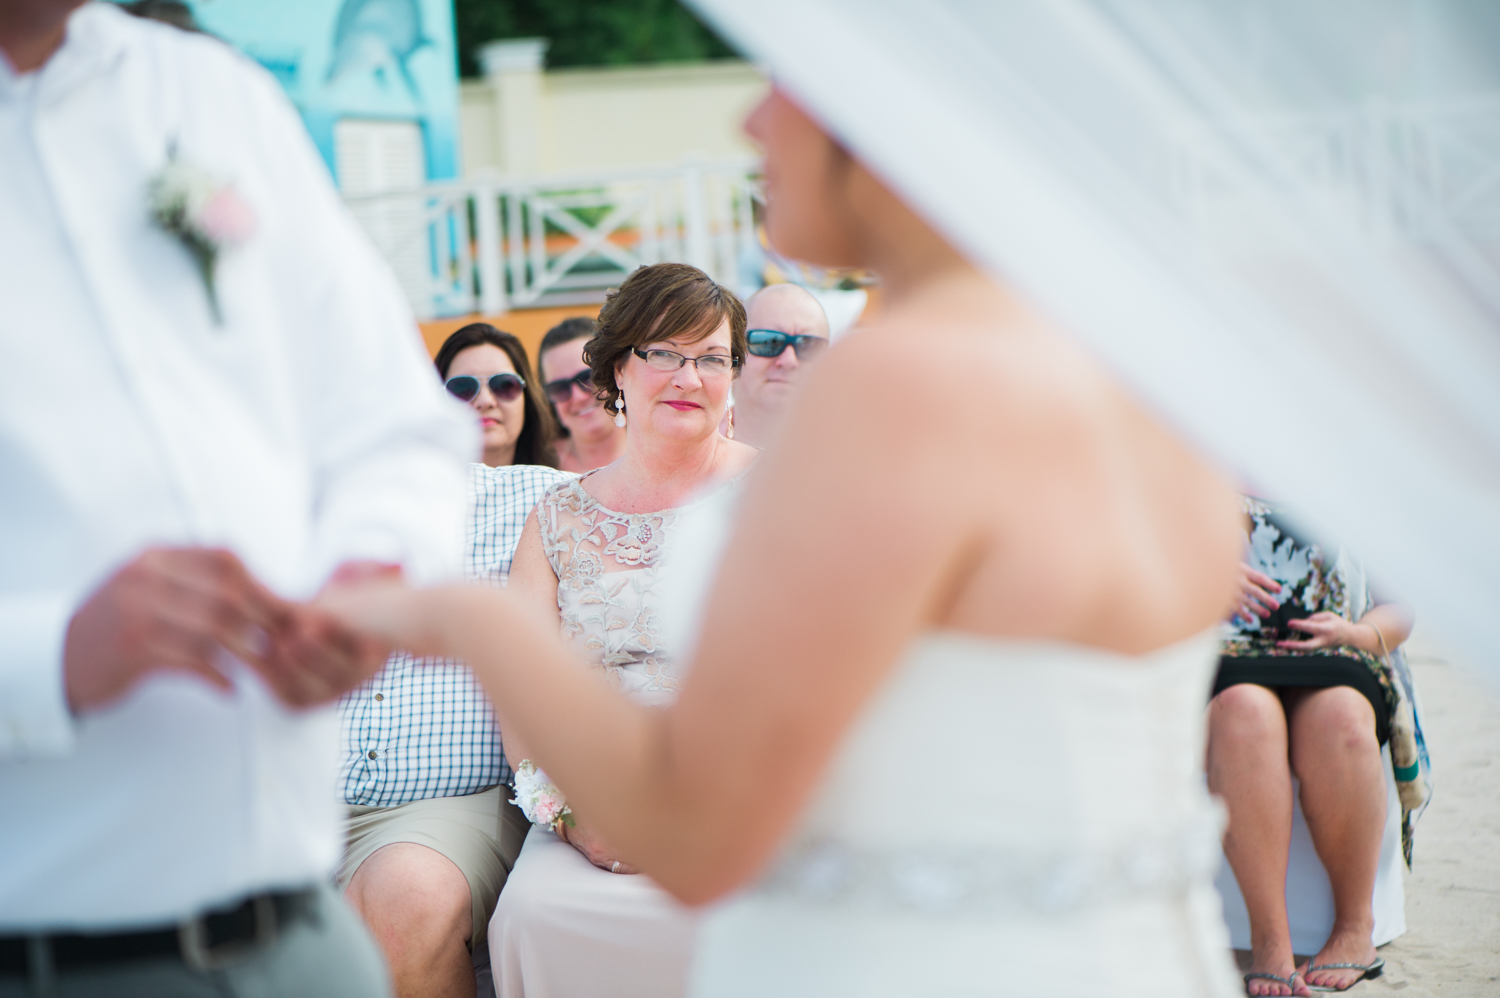 JadeandRyan-Montego-Bay-Jamaica-Wedding-Iberostar-Resort-Beach-57.jpg